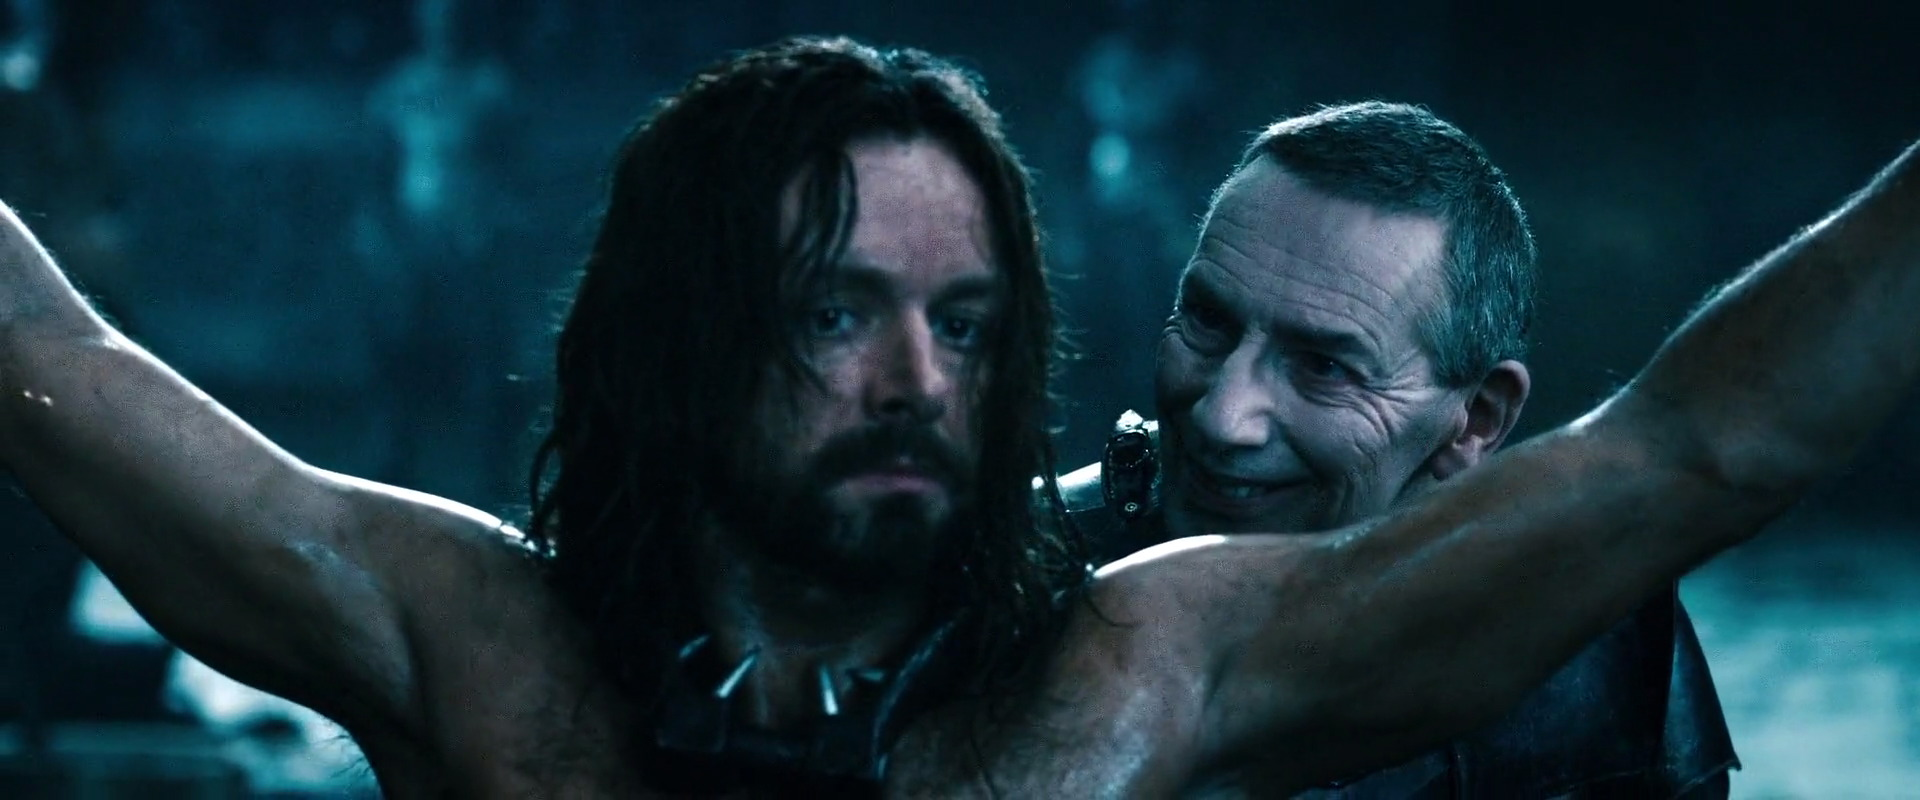 underworld rise of the lycans 2009 movie screencapscom